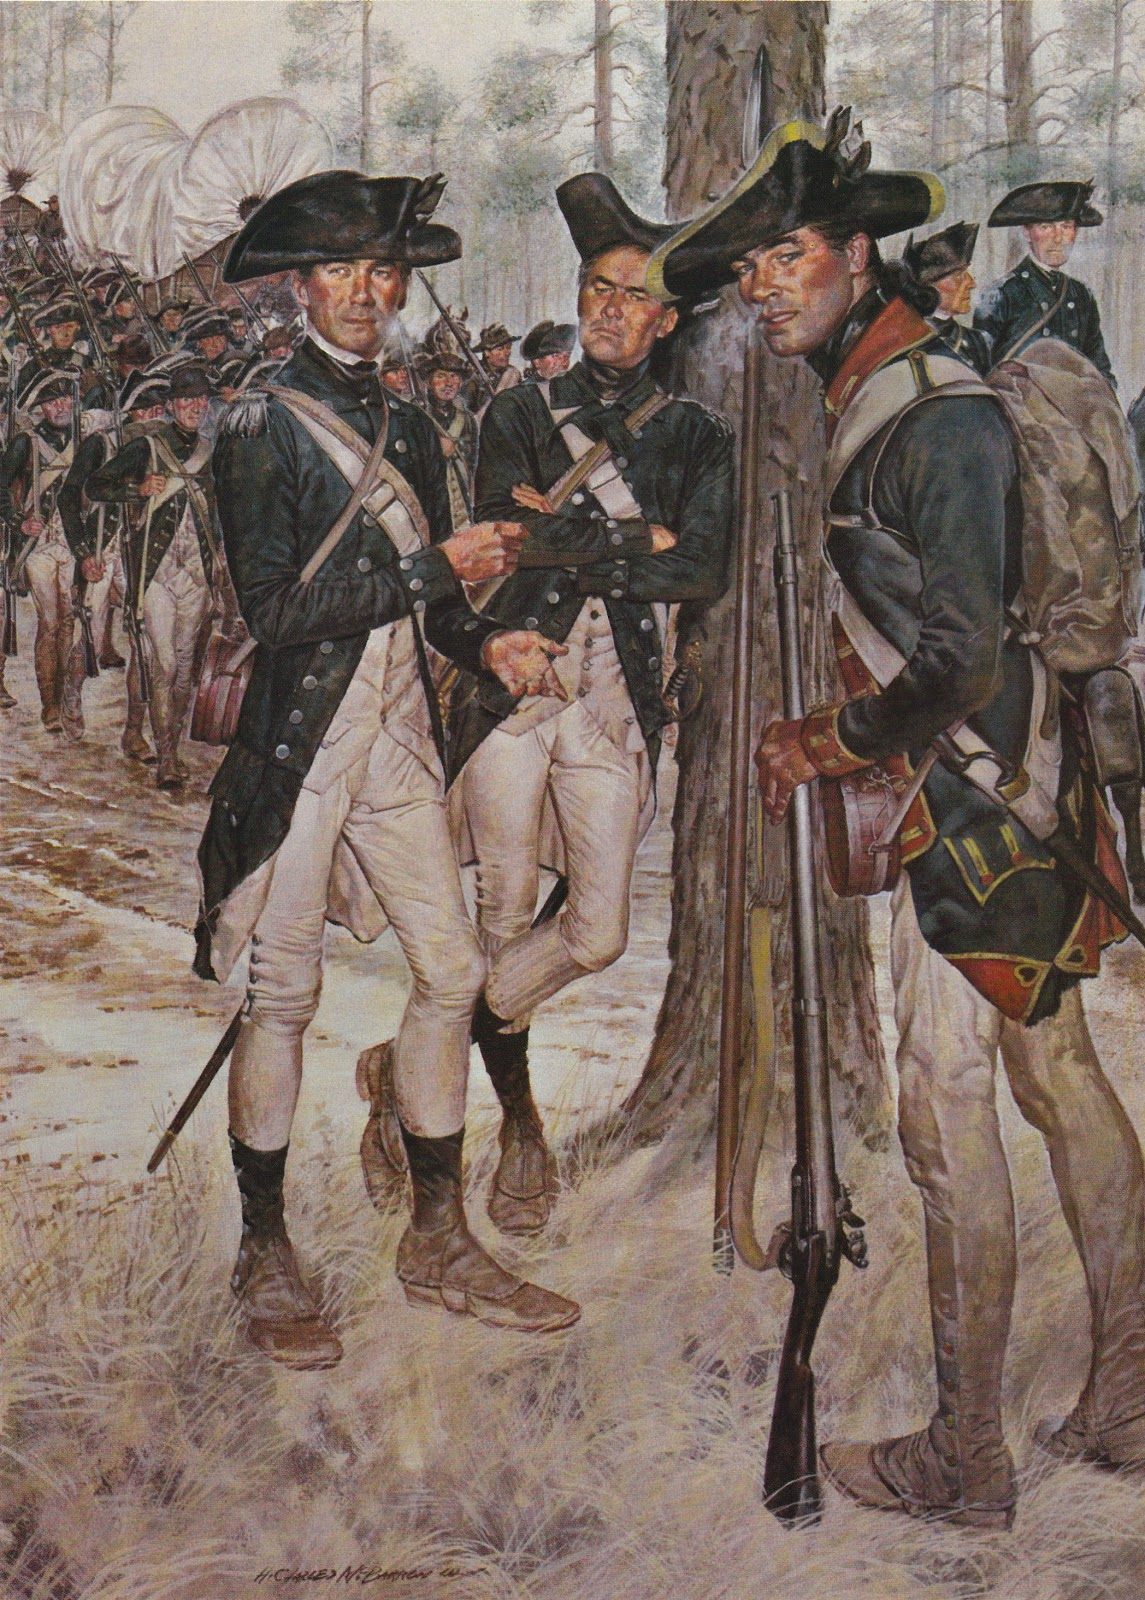 a history of revolution war Home united states history american revolution battles were the first in the american revolution marks the last major battle of the revolutionary war.